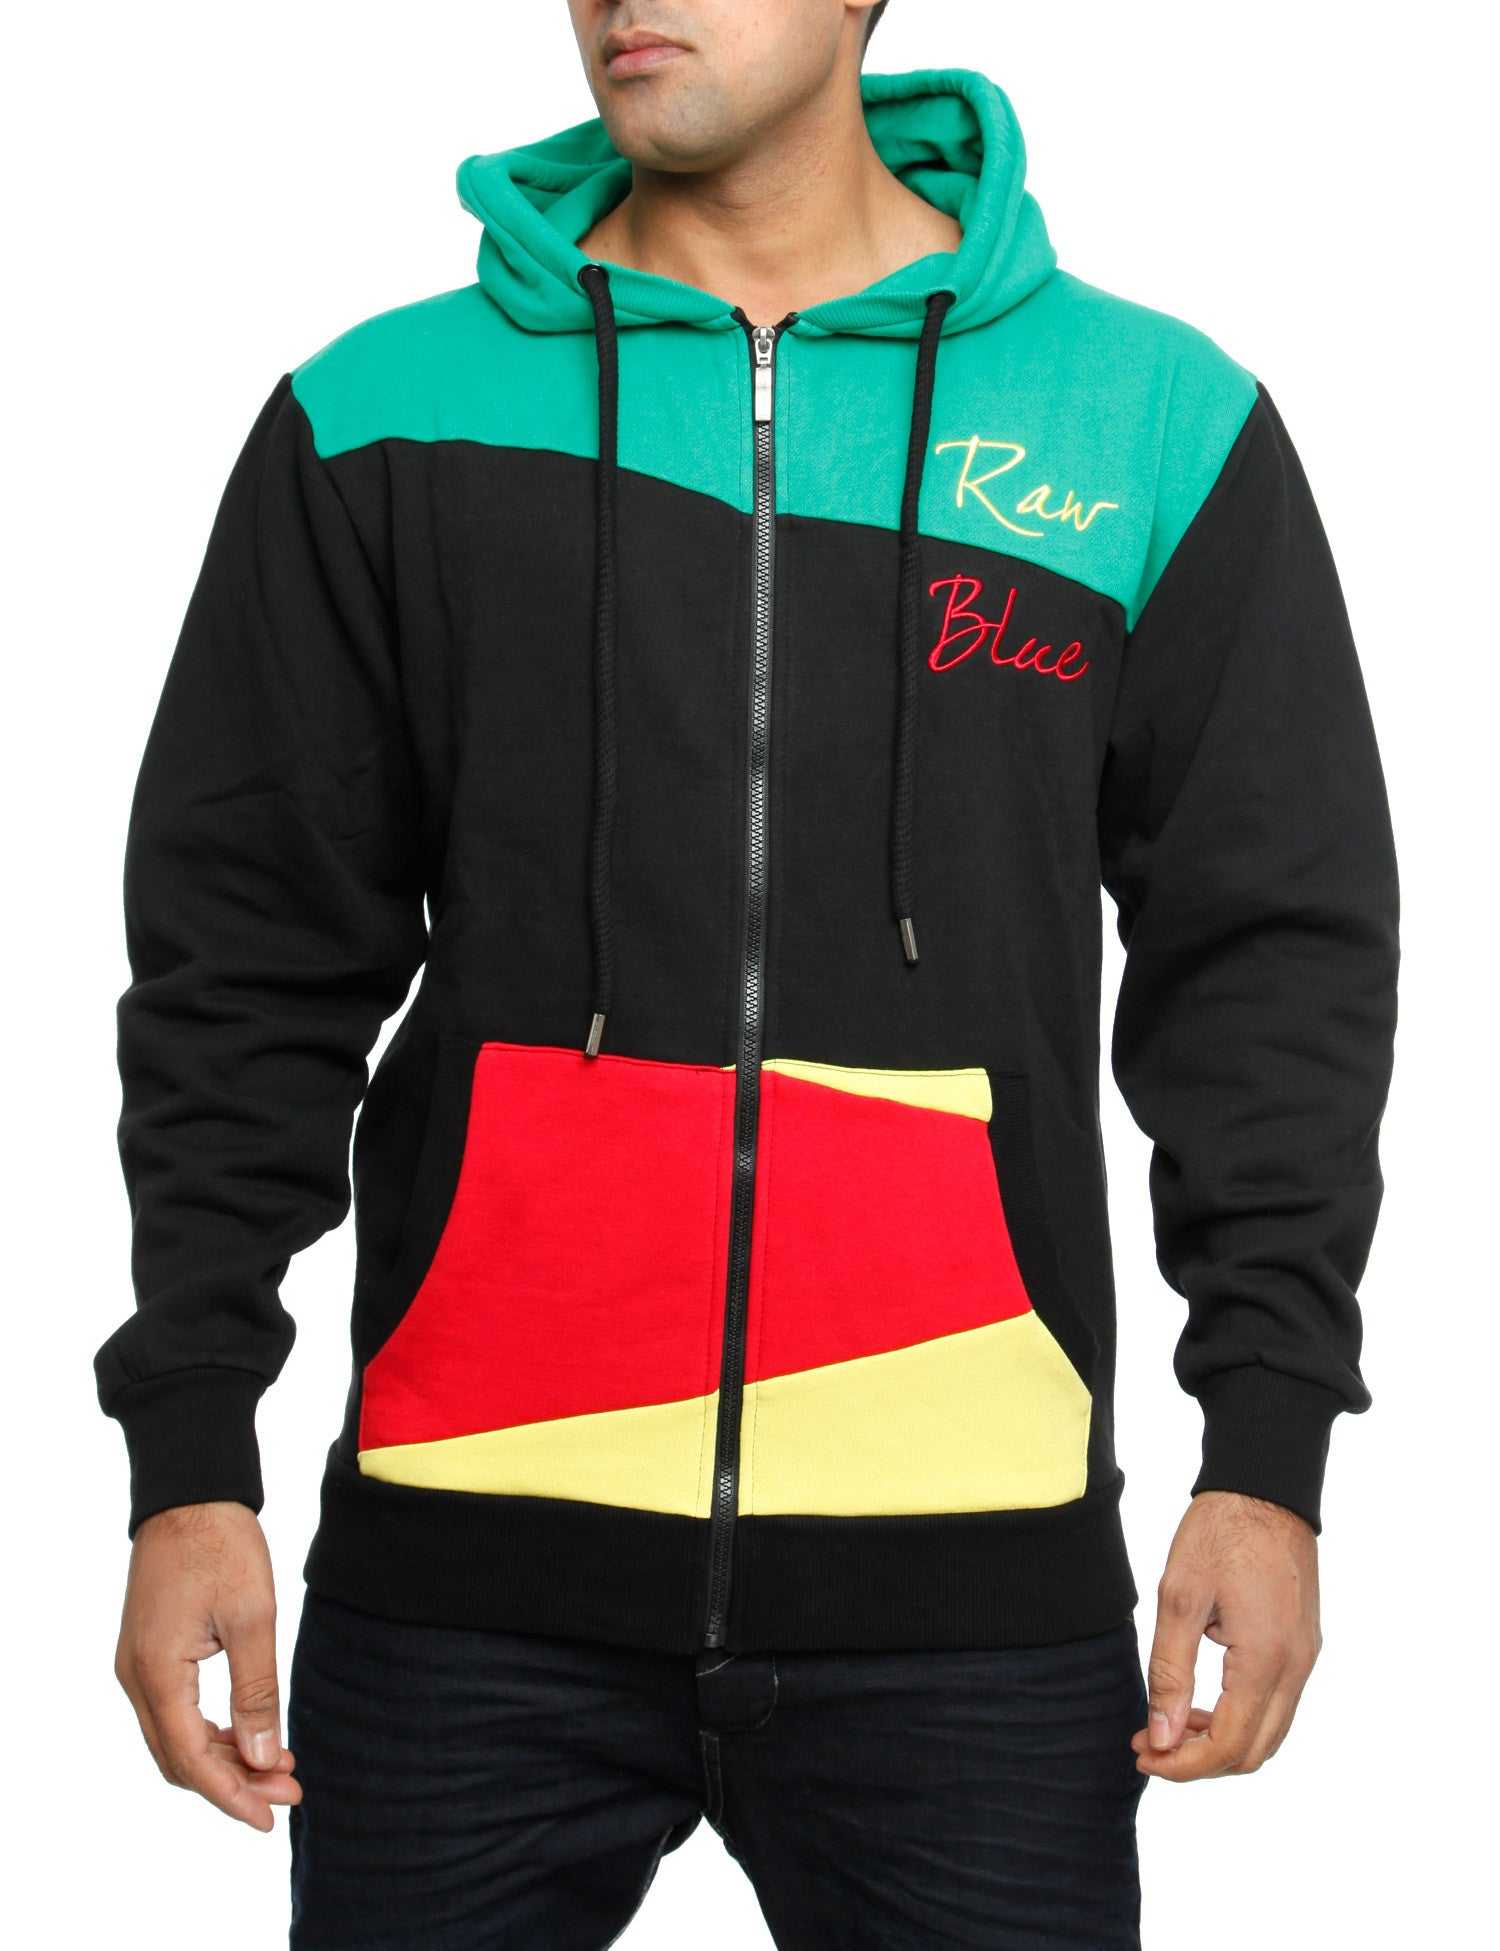 Raw Blue Zip Hoody RBCZ1005 Black